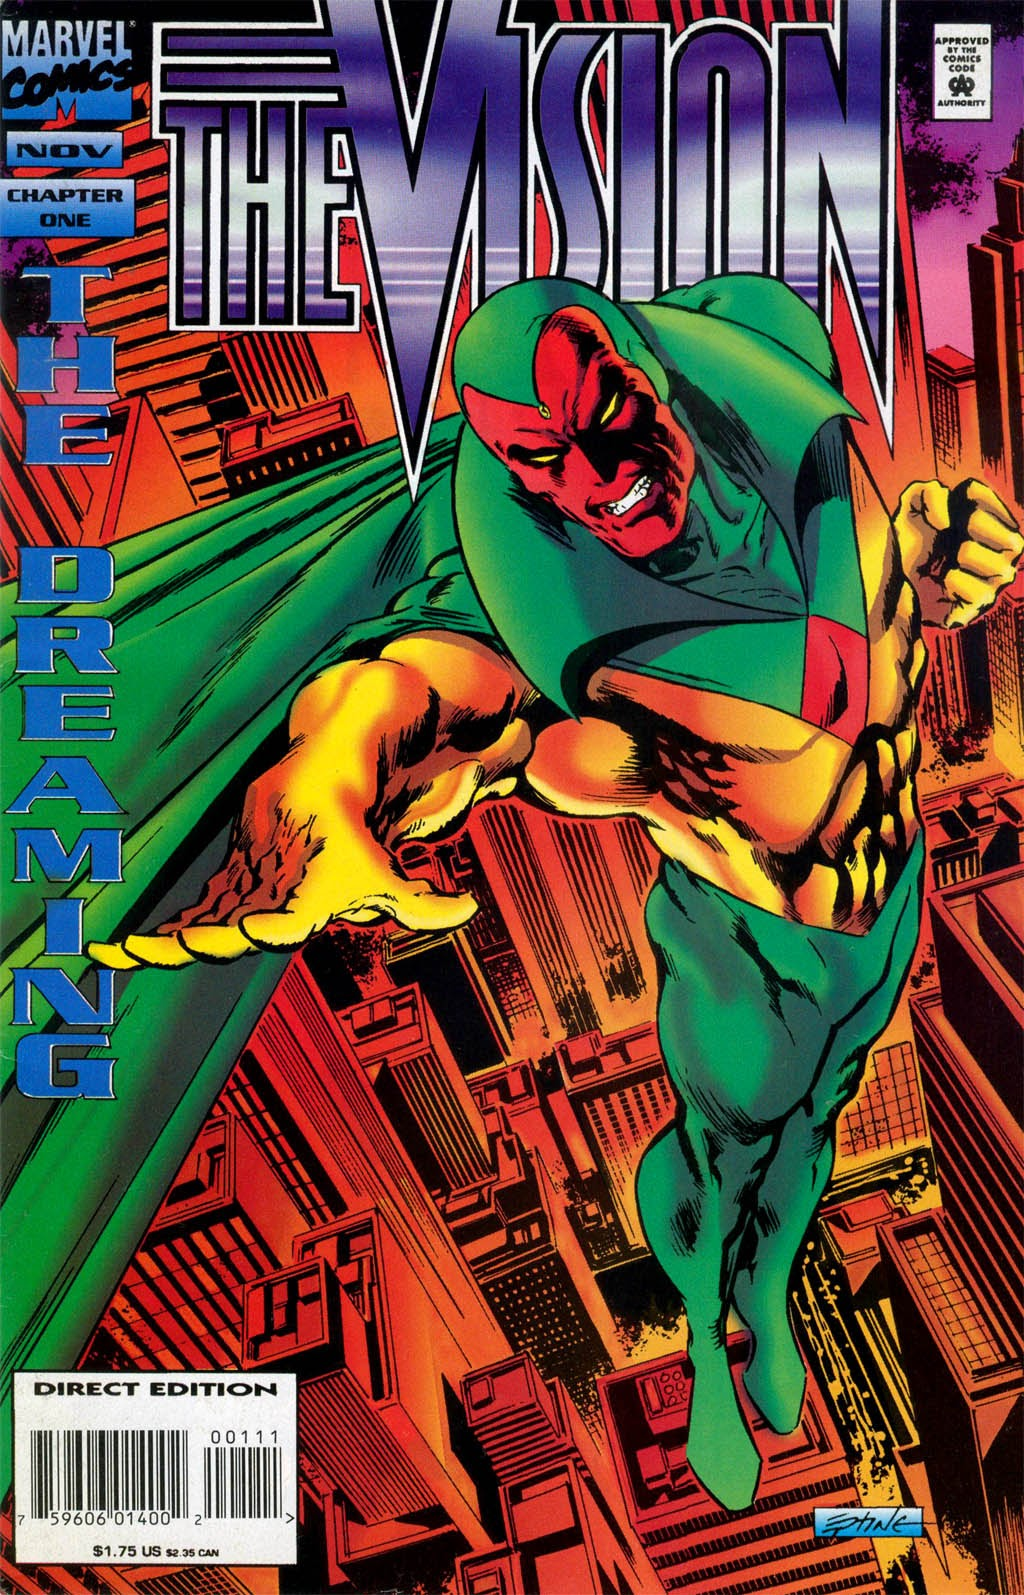 Read online The Vision comic -  Issue #1 - 1